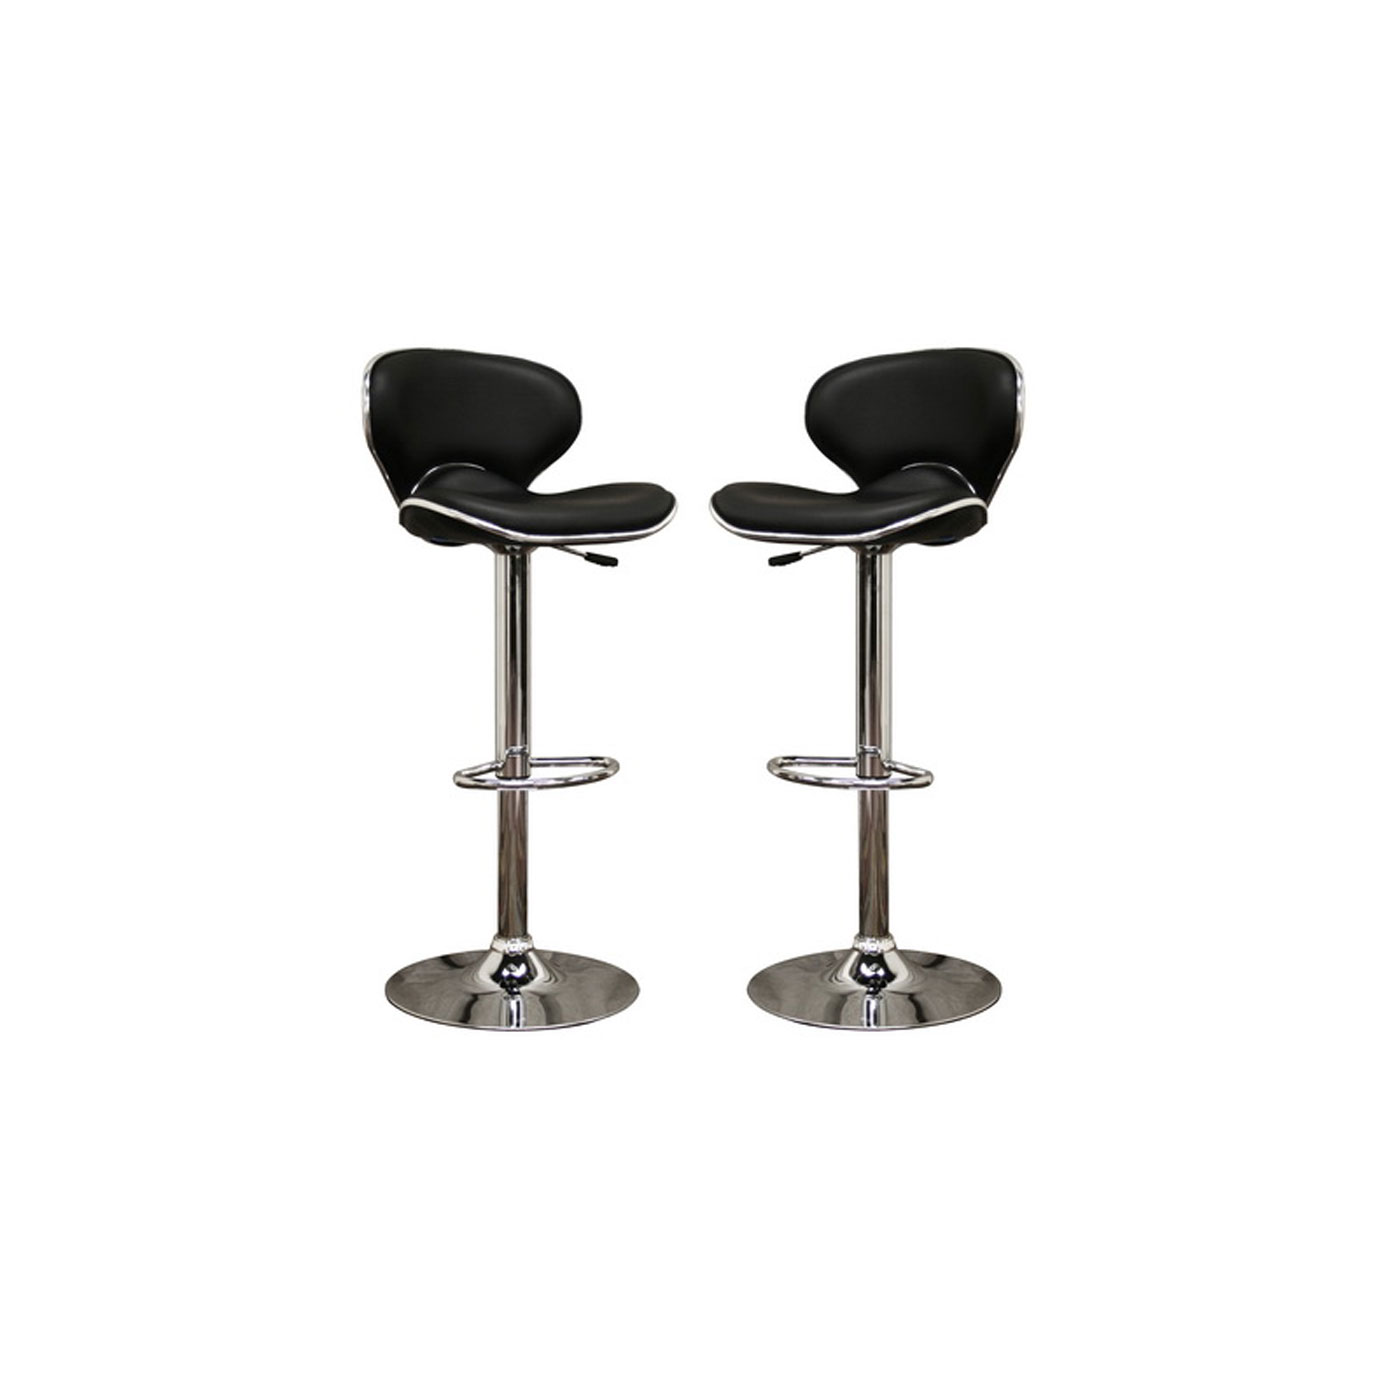 Orion Black Faux Leather Modern Bar Stool Set of 2 by  : orion black faux leather modern bar stool set of 2 by wholesale interiors from www.organizeit.com size 1400 x 1400 jpeg 59kB